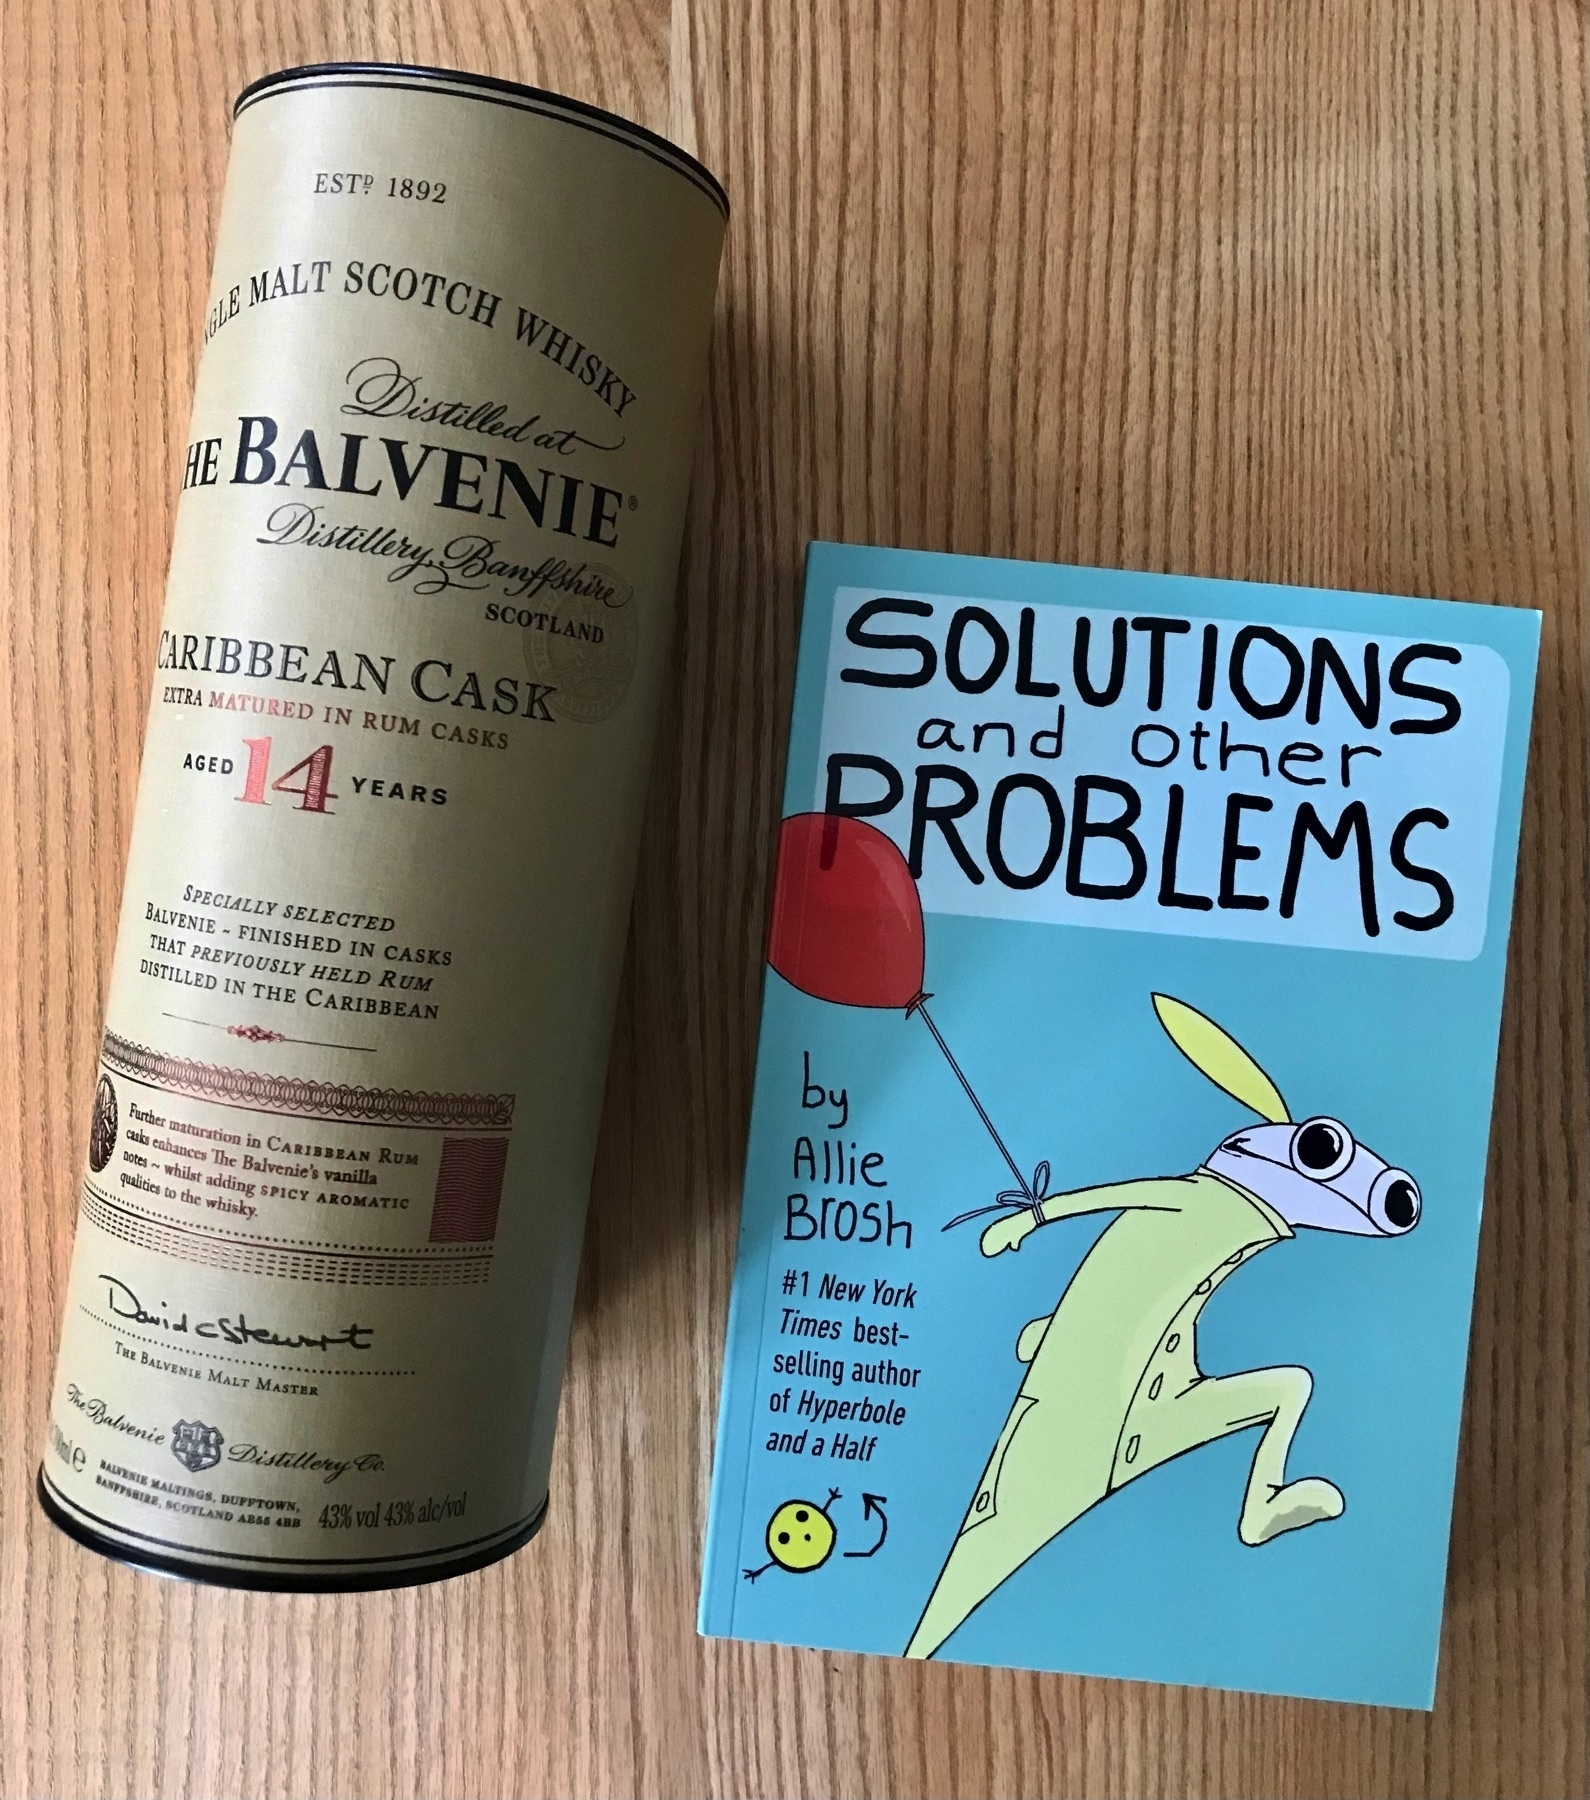 Tubublar packaging containing a bottle of Balvenie Caribbean Cask whisky and the new book by Allie Brosh on a wooden table.